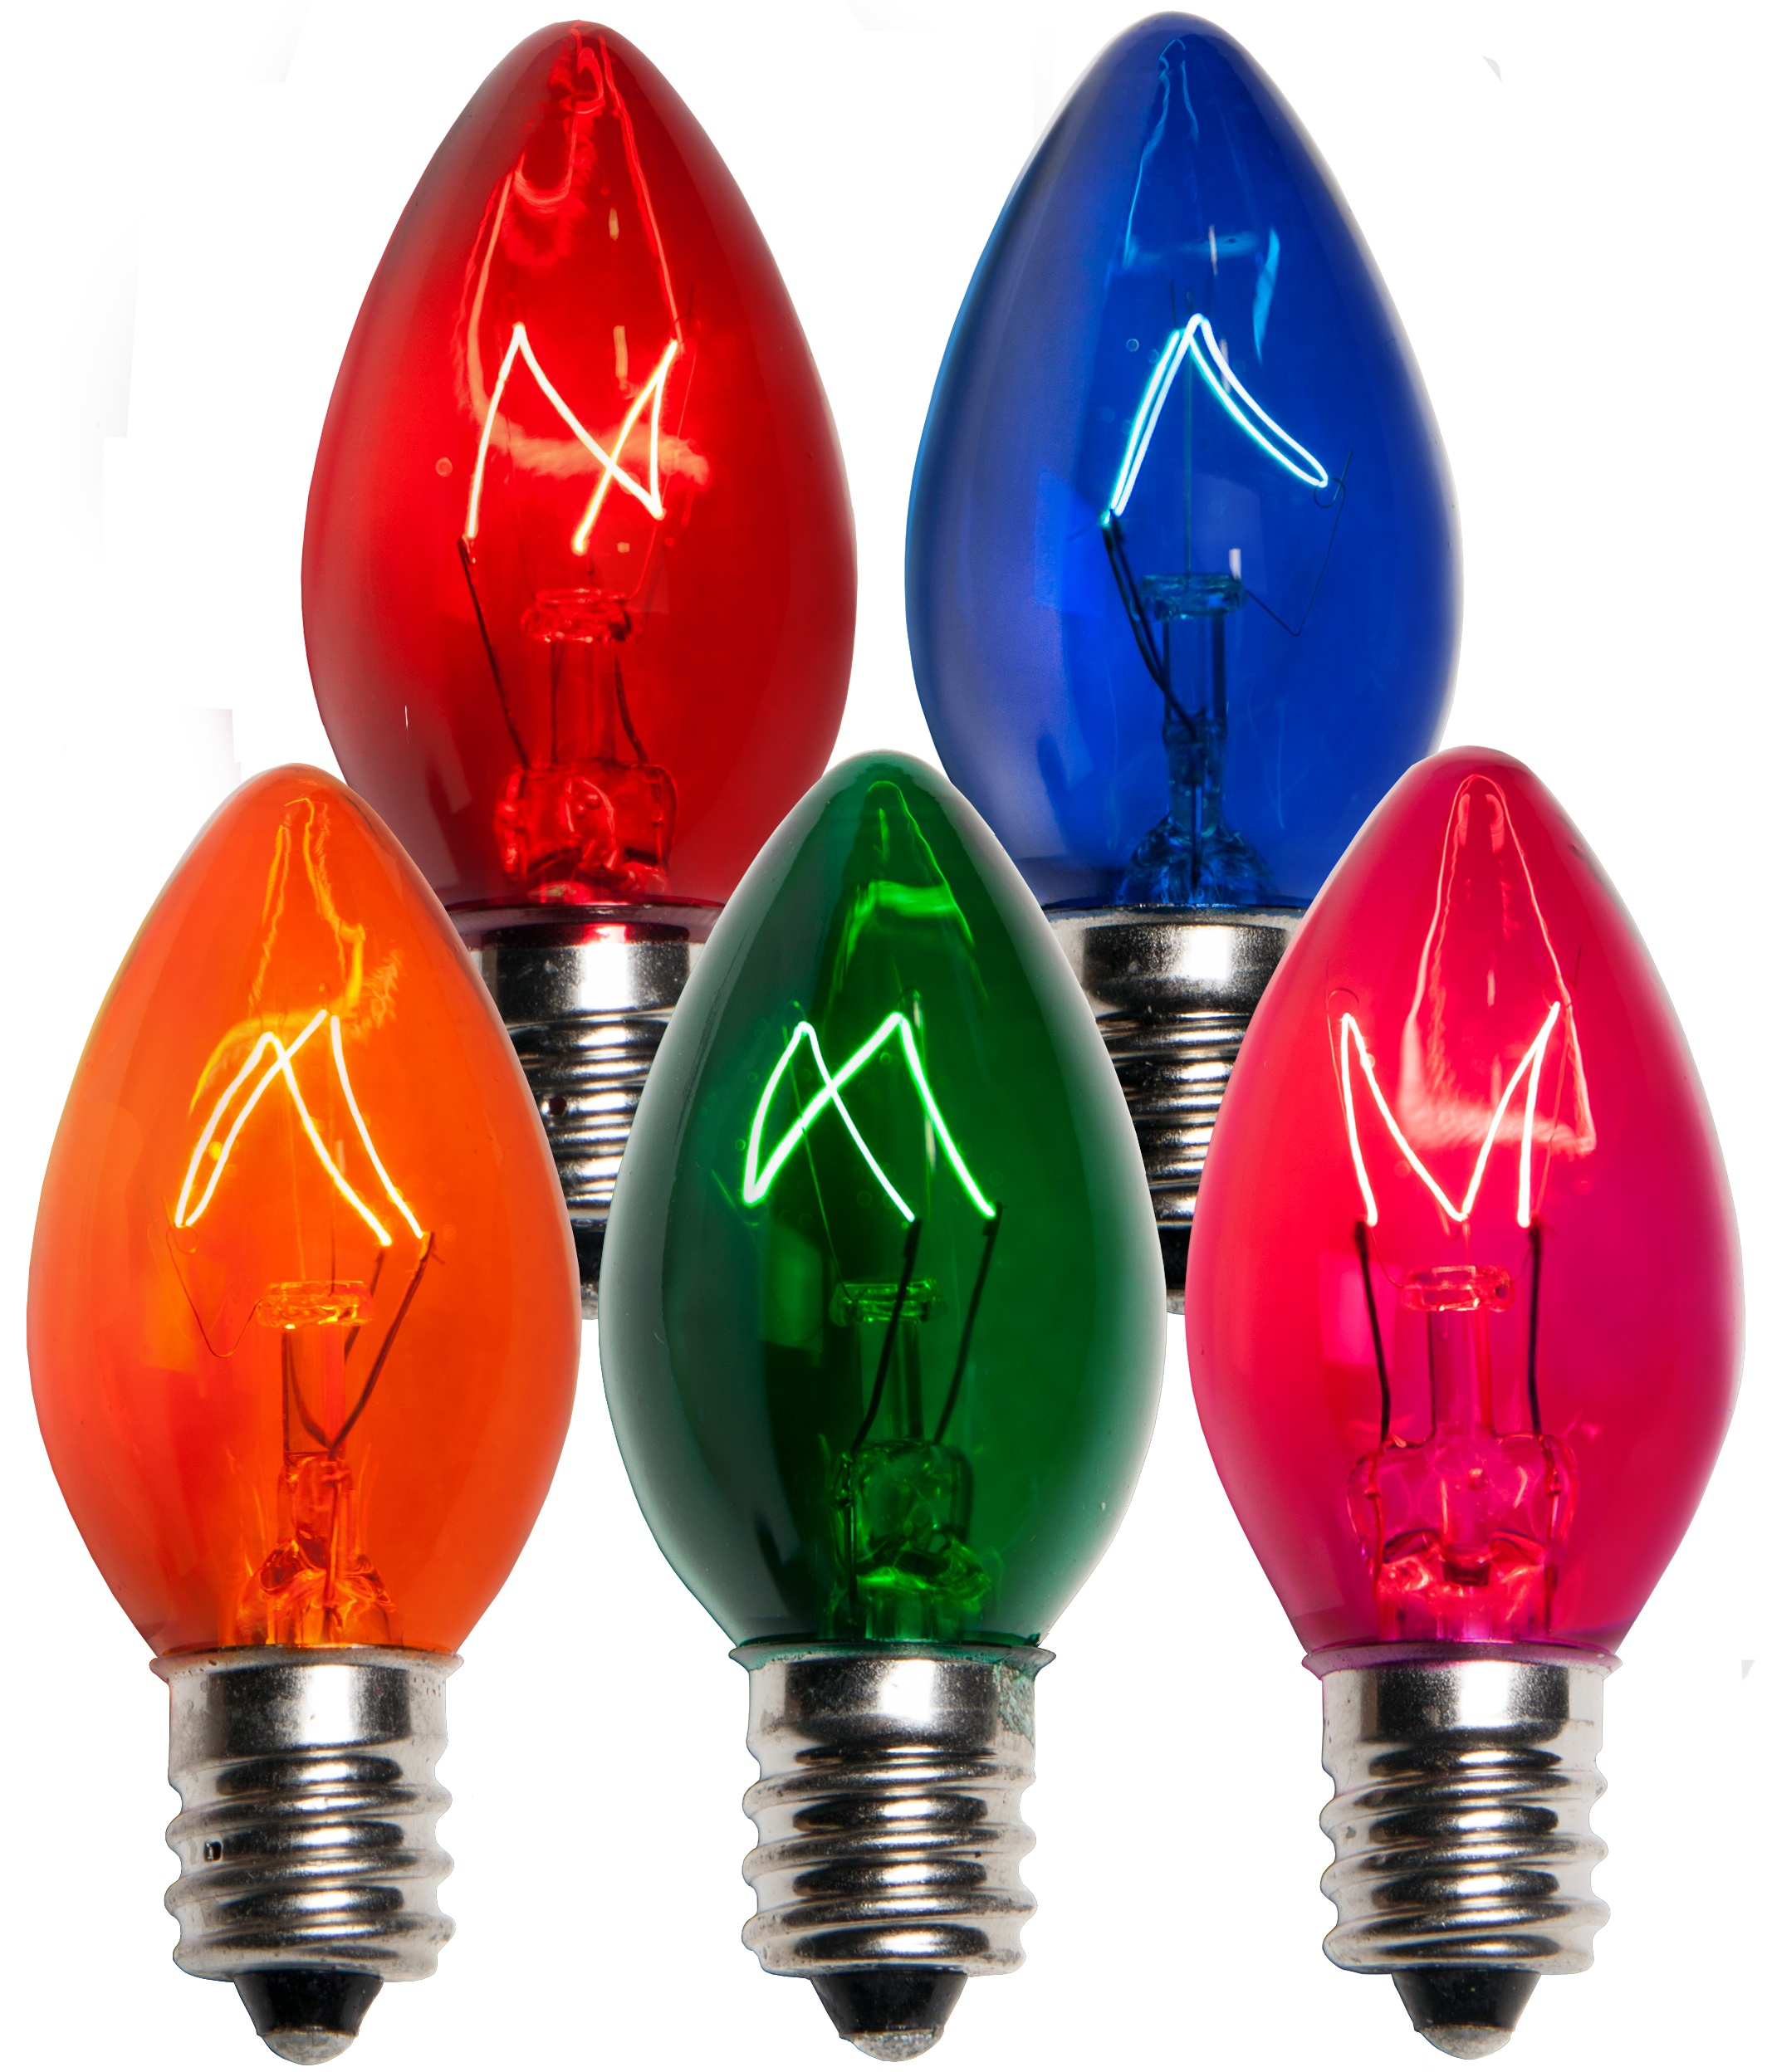 c7 christmas light bulb